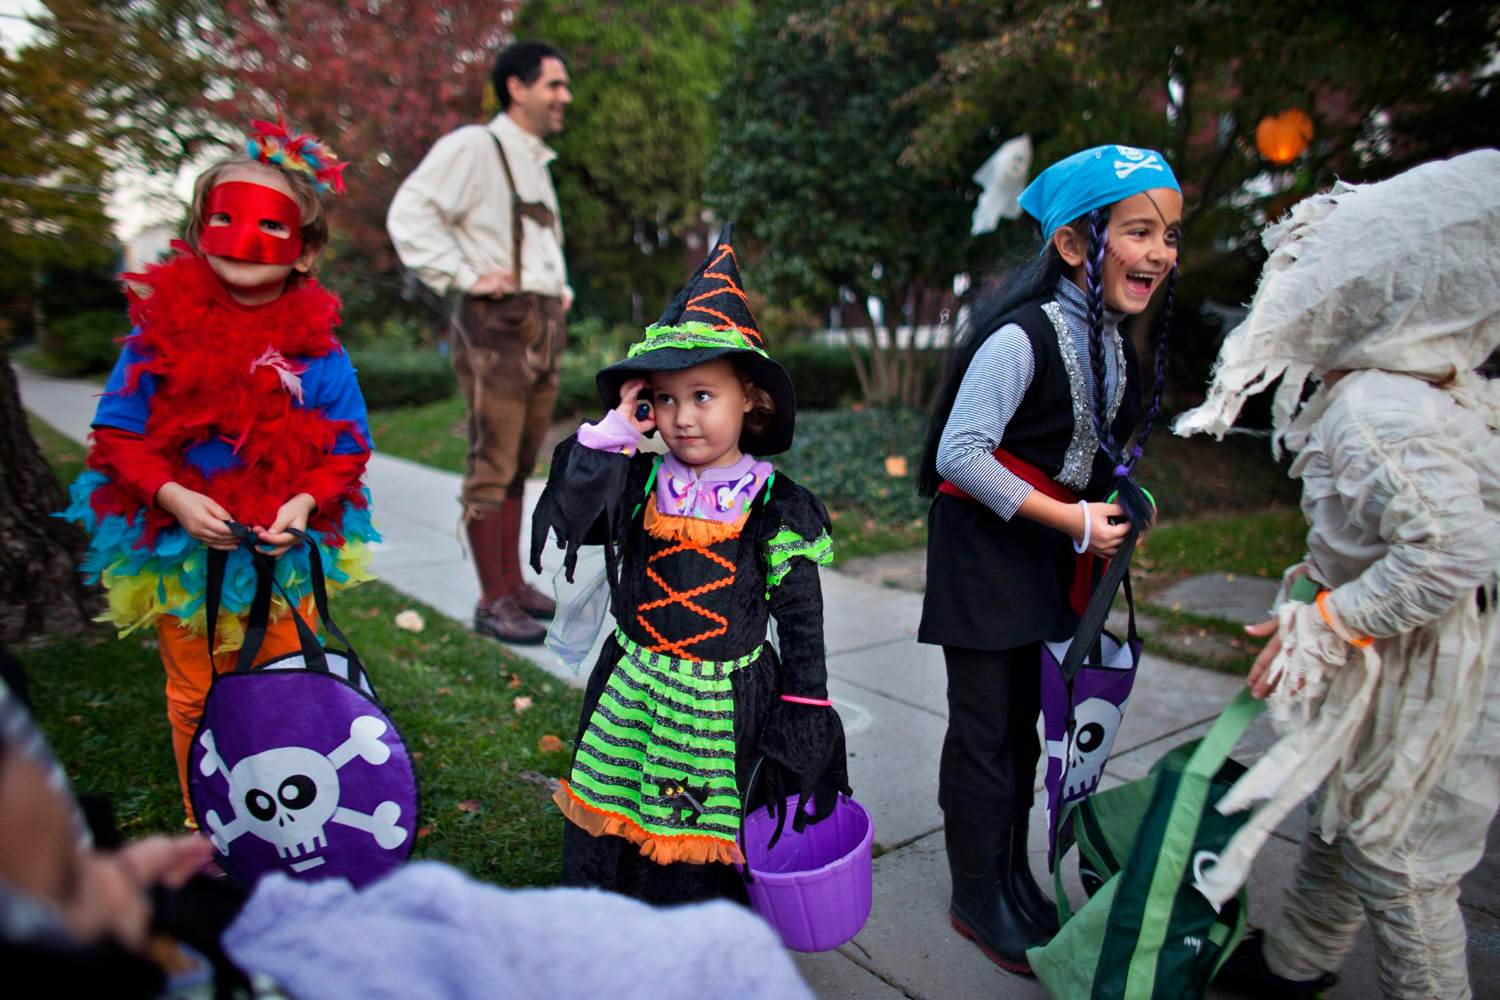 Outdoor Halloween Decorations celebrations and costumes